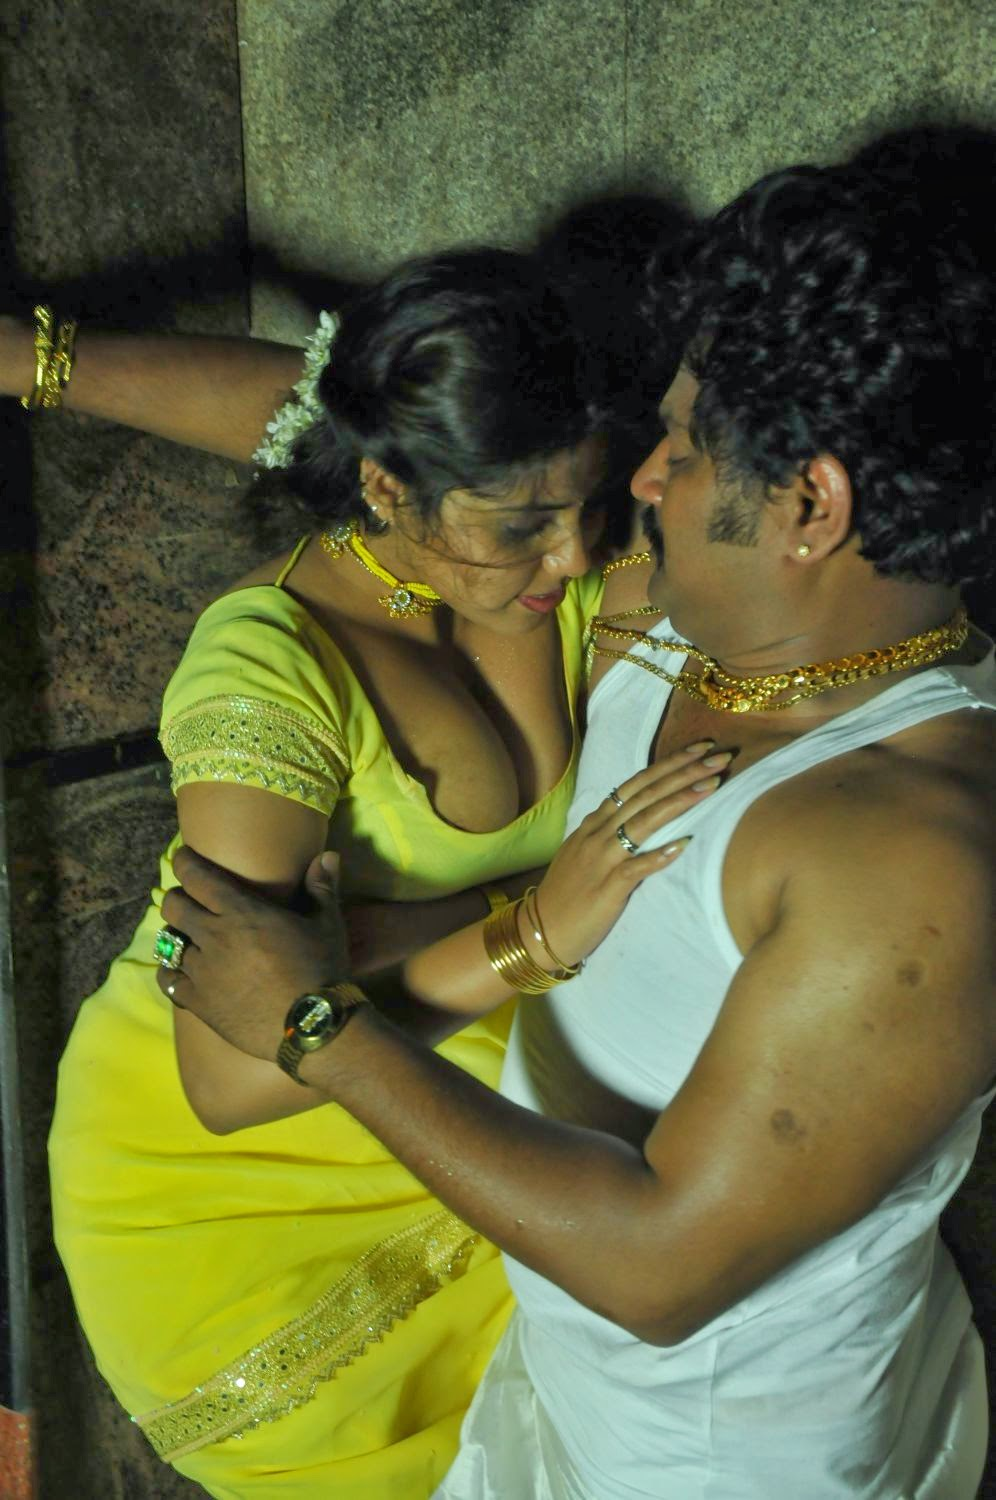 Kerala aunty with her bf - 3 part 1